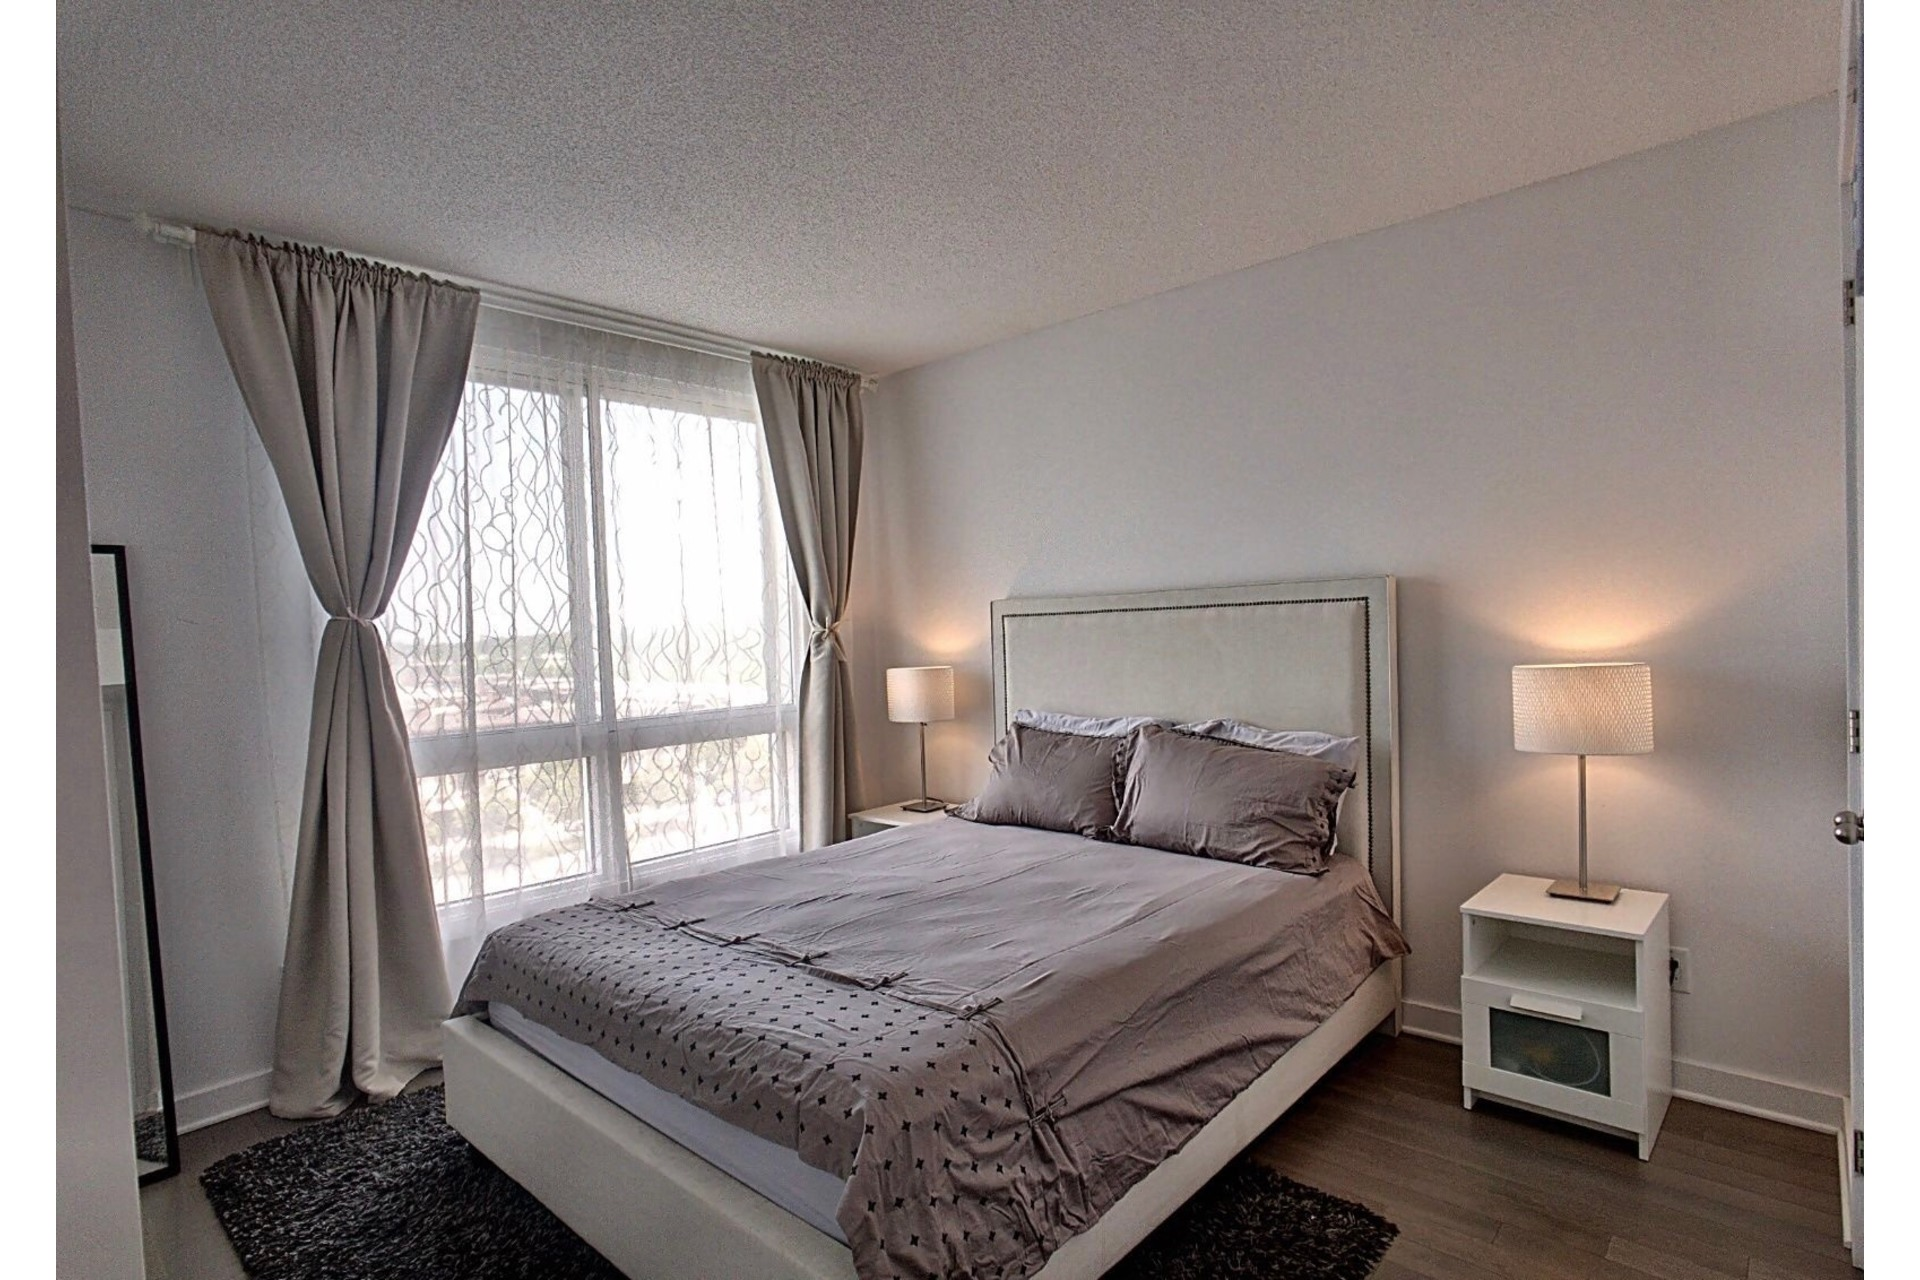 image 11 - Apartment For sale Ahuntsic-Cartierville Montréal  - 5 rooms